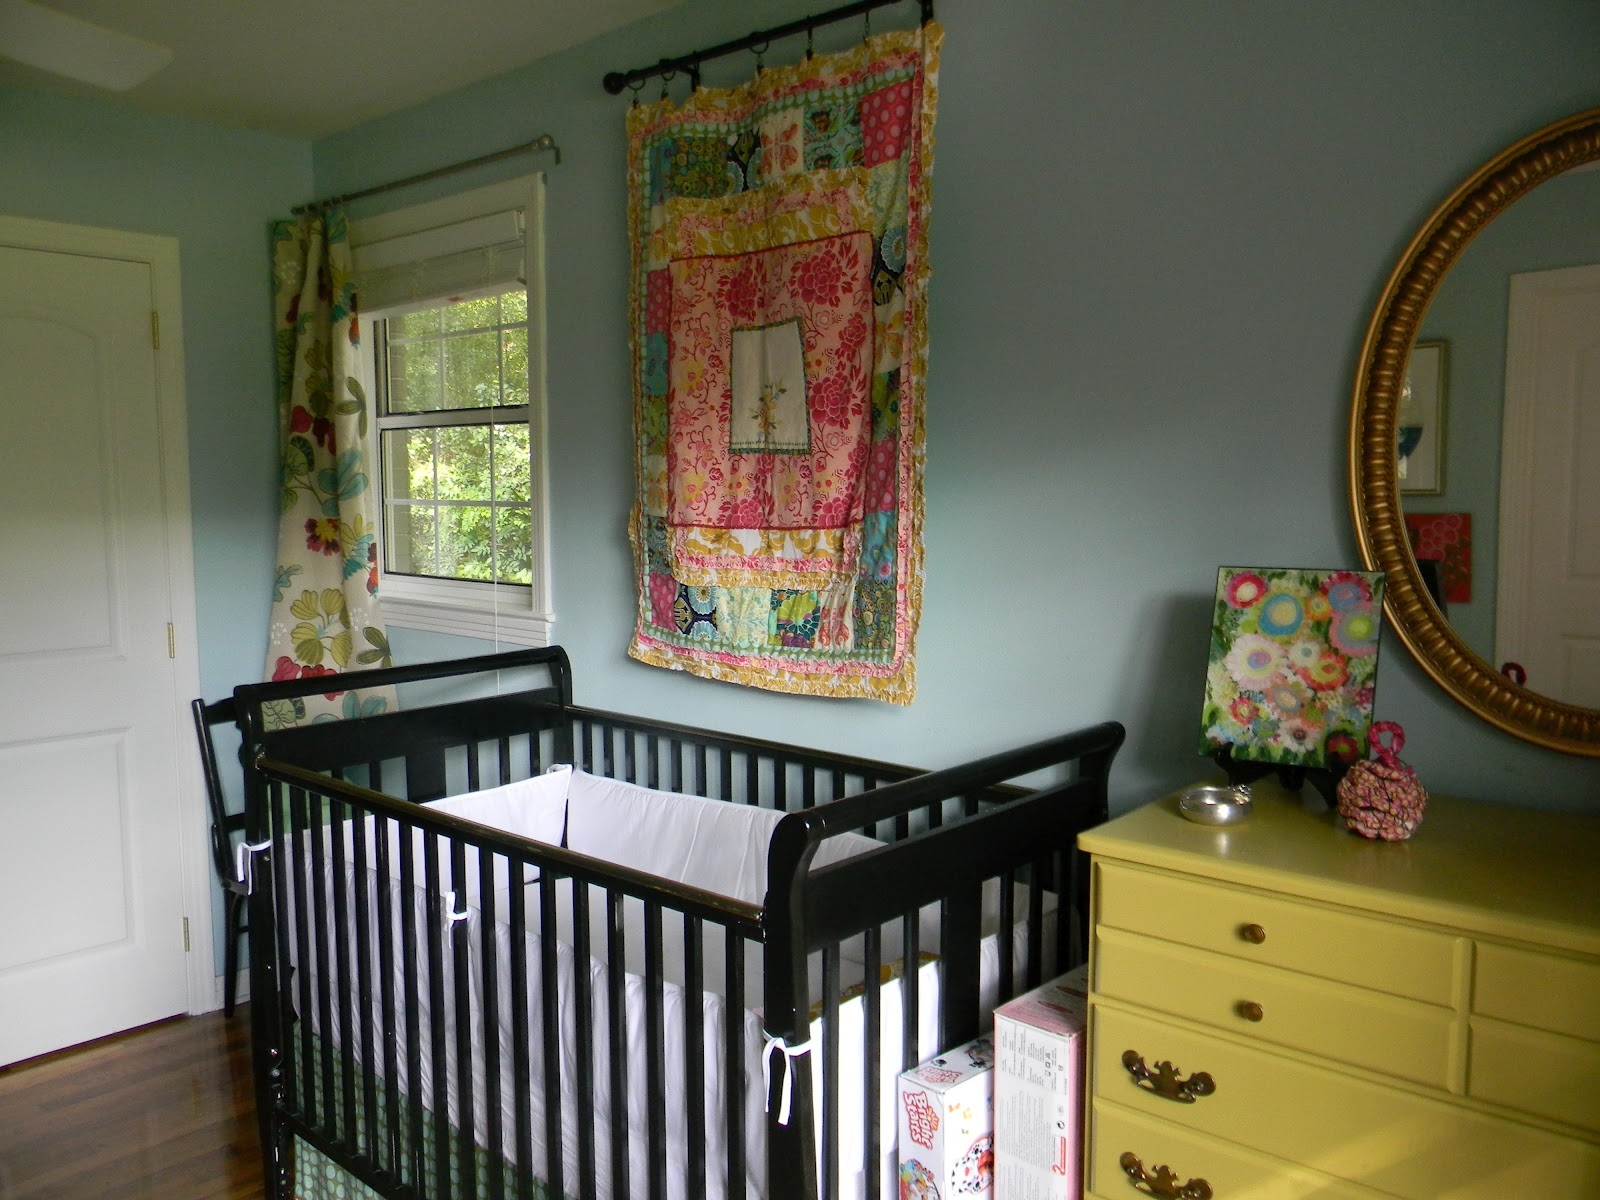 The Governor S Daughter Baby Sister Nursery